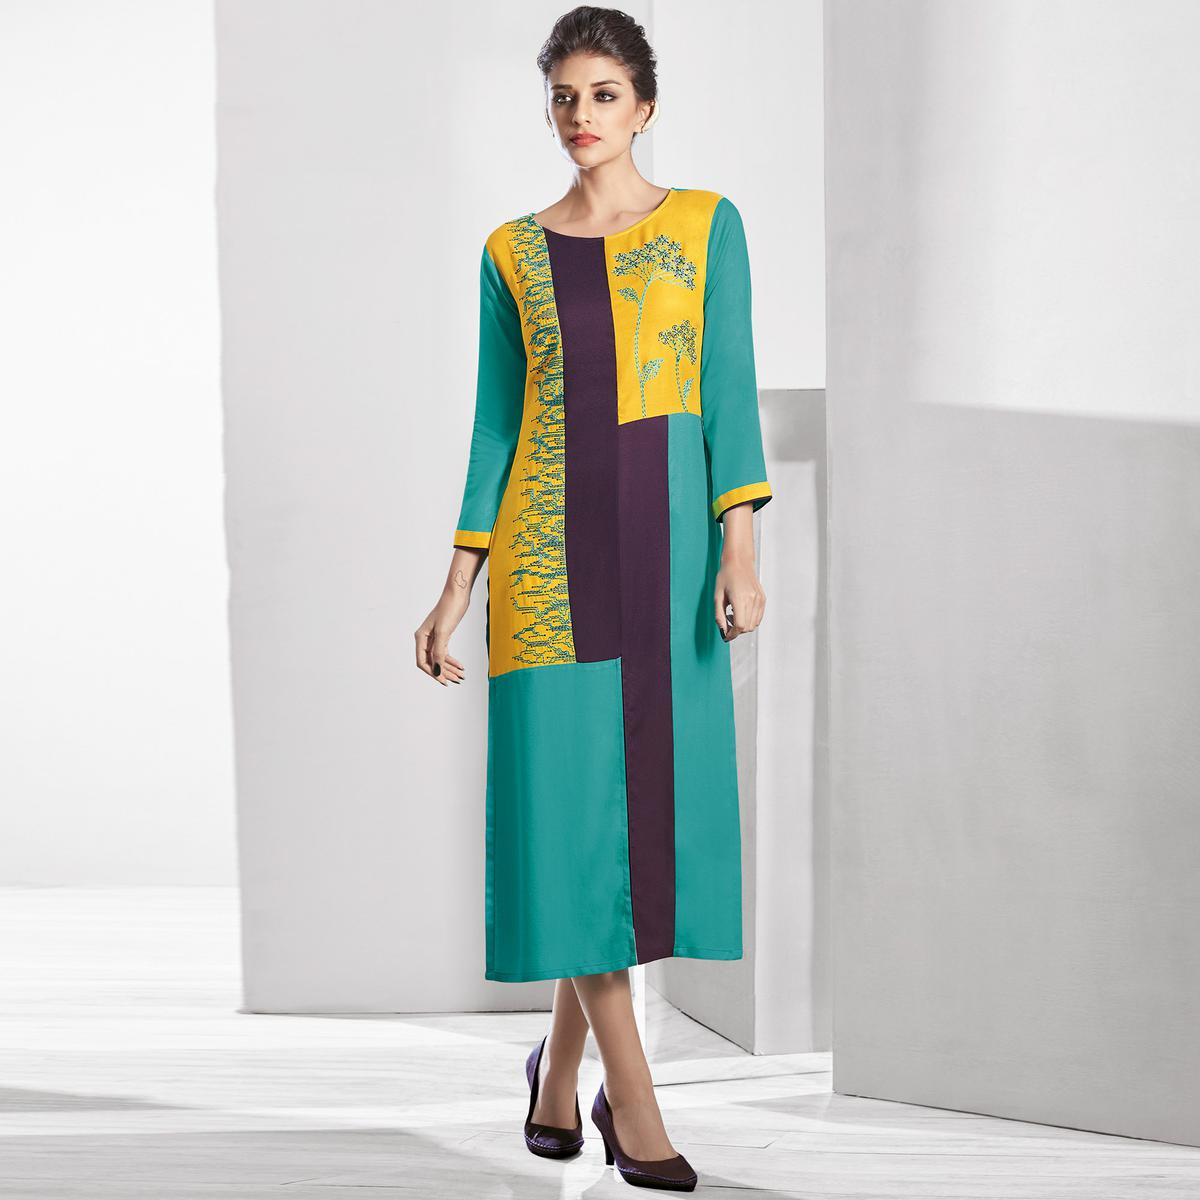 Impressive Turquoise Green-Yellow Colored Casual Embroidered Pure Viscose Kurti